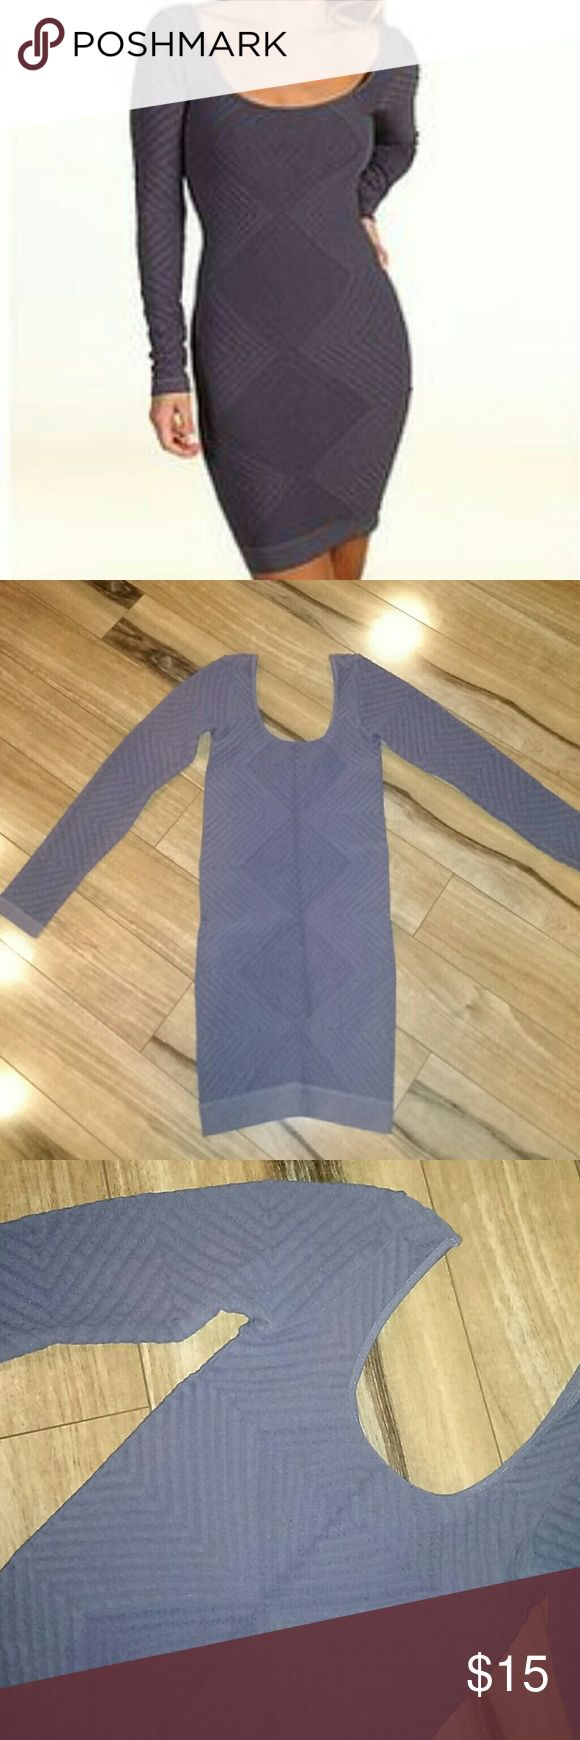 """Bcbgeneration bodycon dress! In perfect condition purple diamond pattern bodycon dress in """"moonshadow"""" color! BCBGeneration Dresses"""